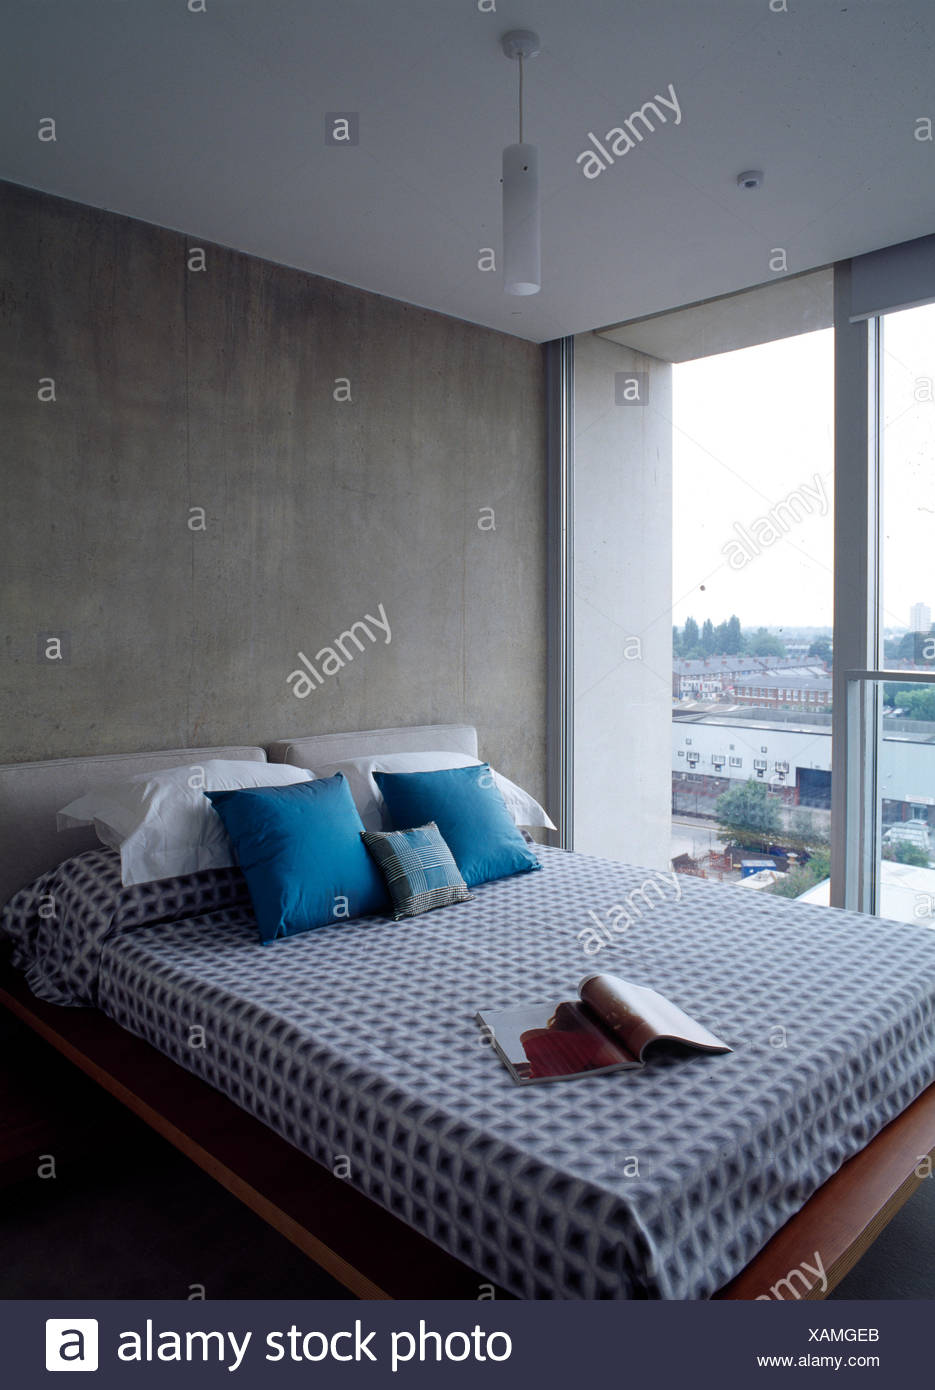 moderne plattform bett vor bildfenster in einem penthouse apartment